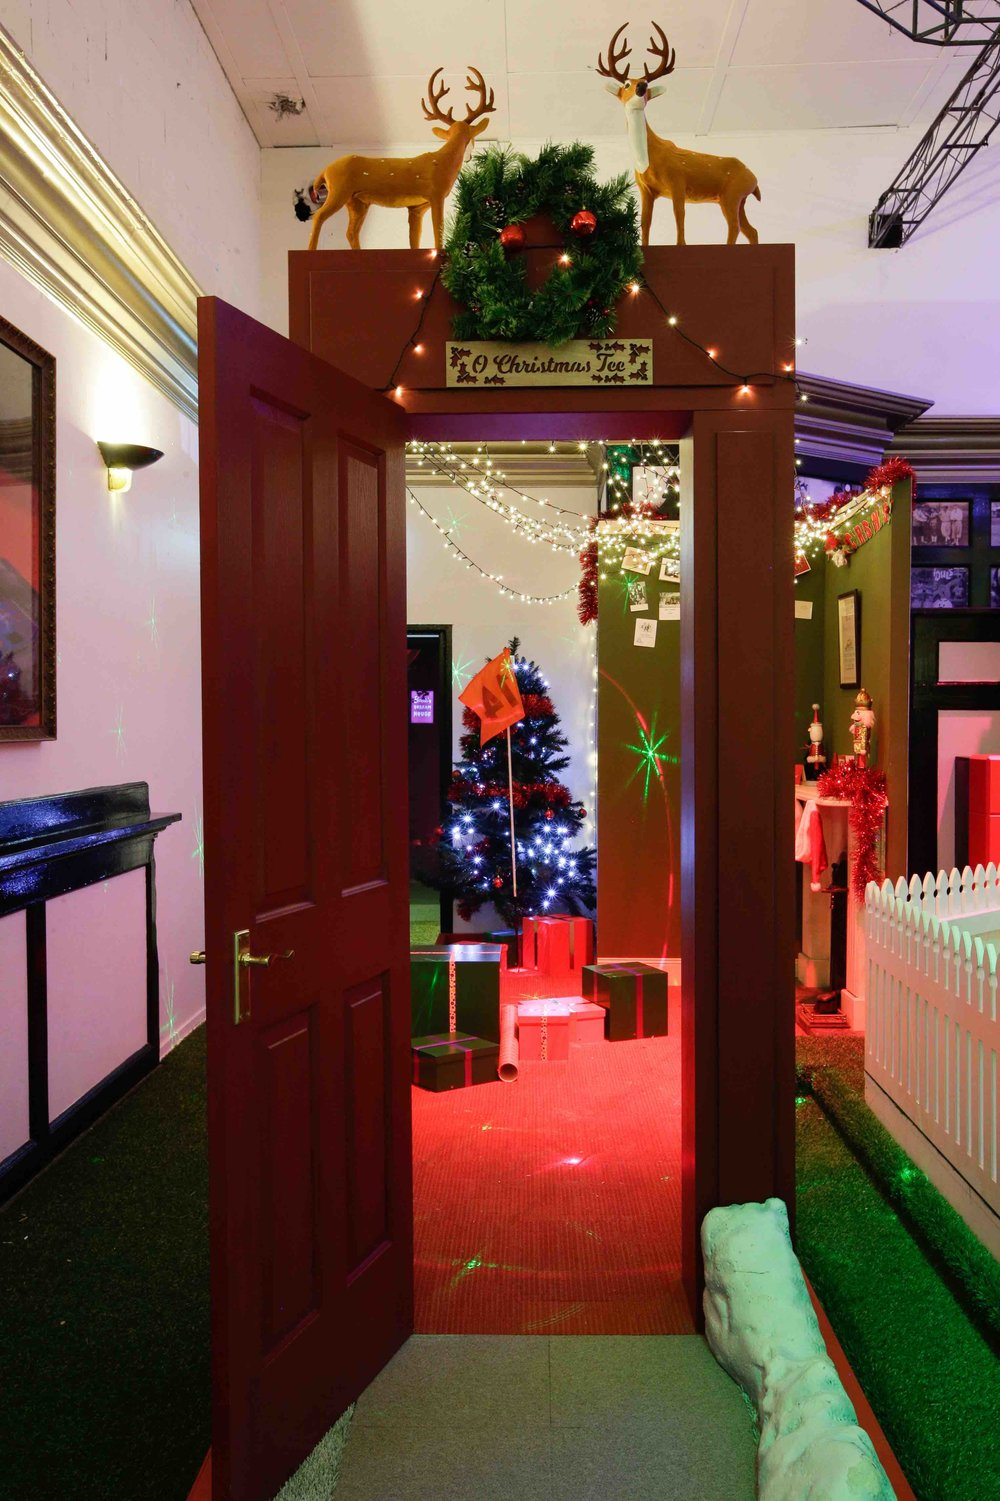 holey-moley-golf-club-launch-2017-interior-o-christmas-tree-1.jpeg